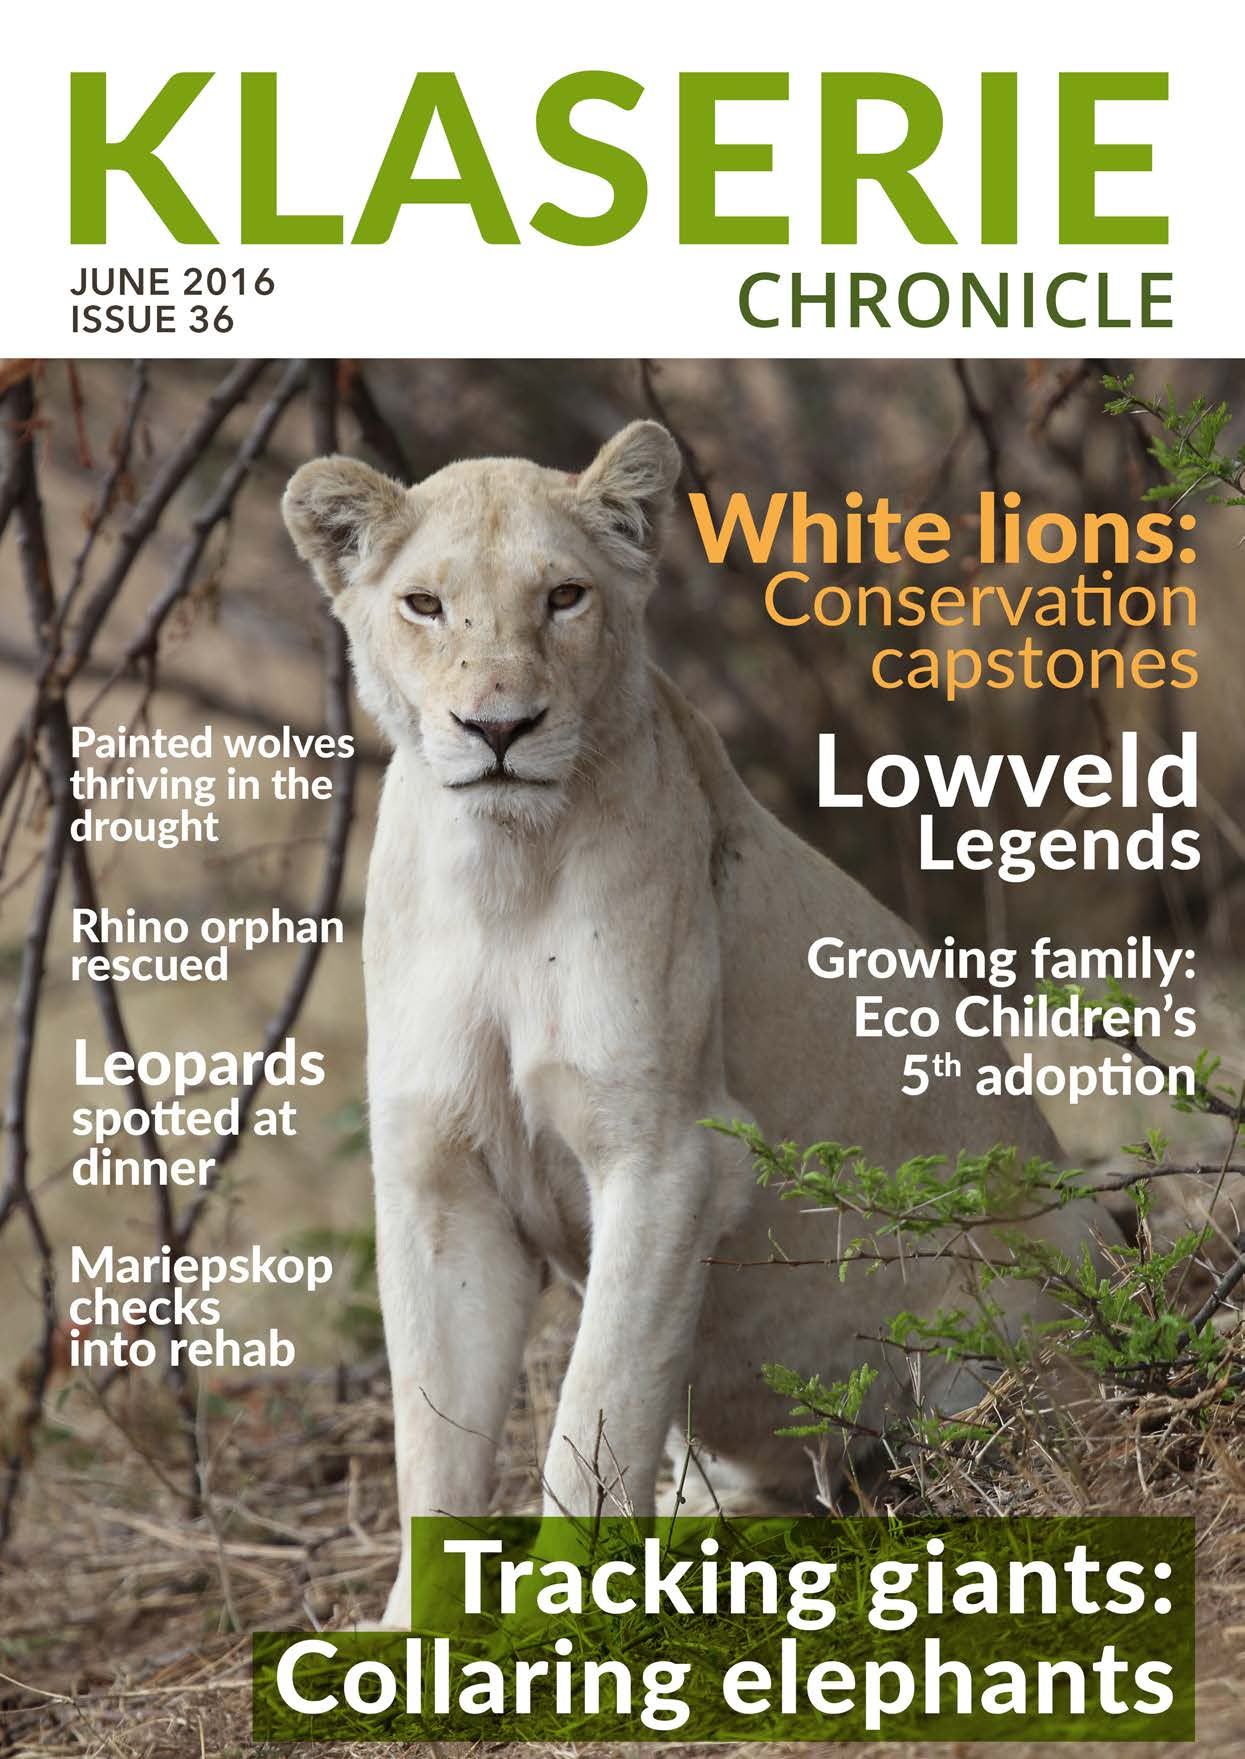 Klaserie Chronicle_WLT_White Lion Article 2016[4] 1